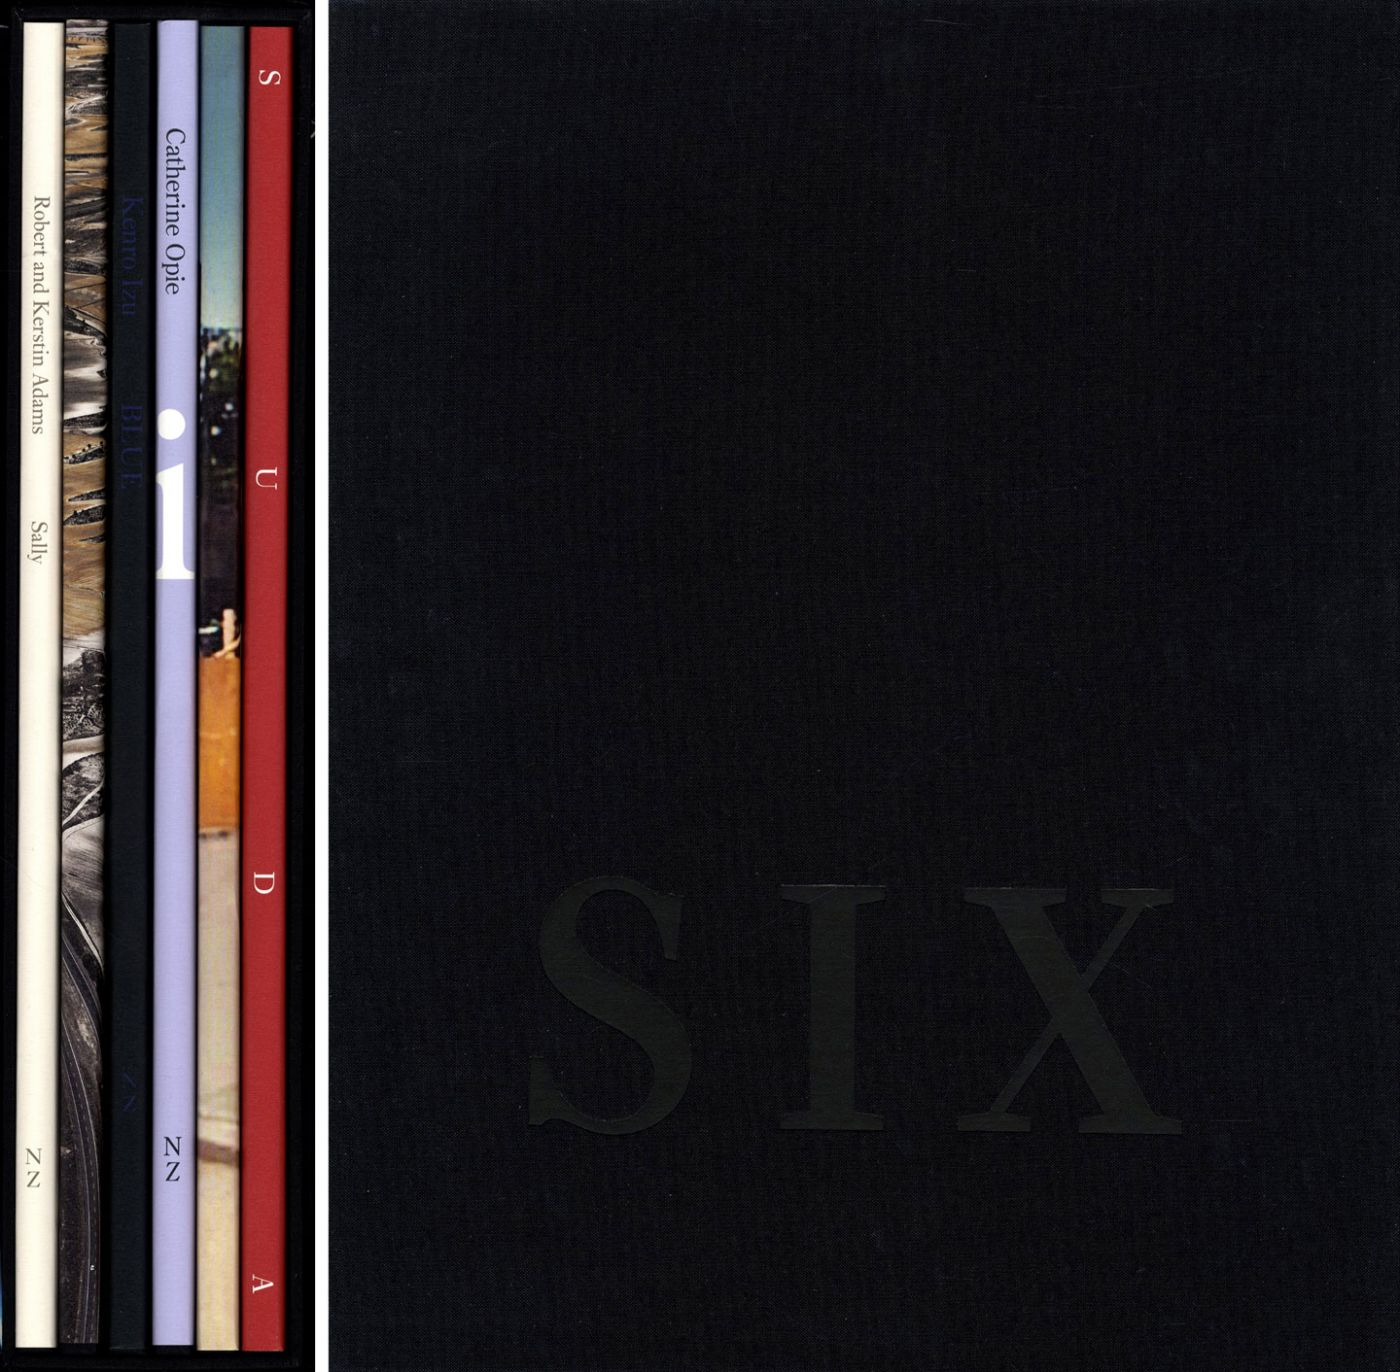 Nazraeli Press Six by Six (6 x 6) Subscription Series: Set 4 (of 6), Limited Edition (with 6 Prints): Robert Adams: Sally; Edward Burtynsky: Monegros (Dryland Farming); Kenro Izu: Blue; Catherine Opie: The Middle of Somewhere; Doug Rickard: A New American Picture; Issei Suda: Sparrow Island